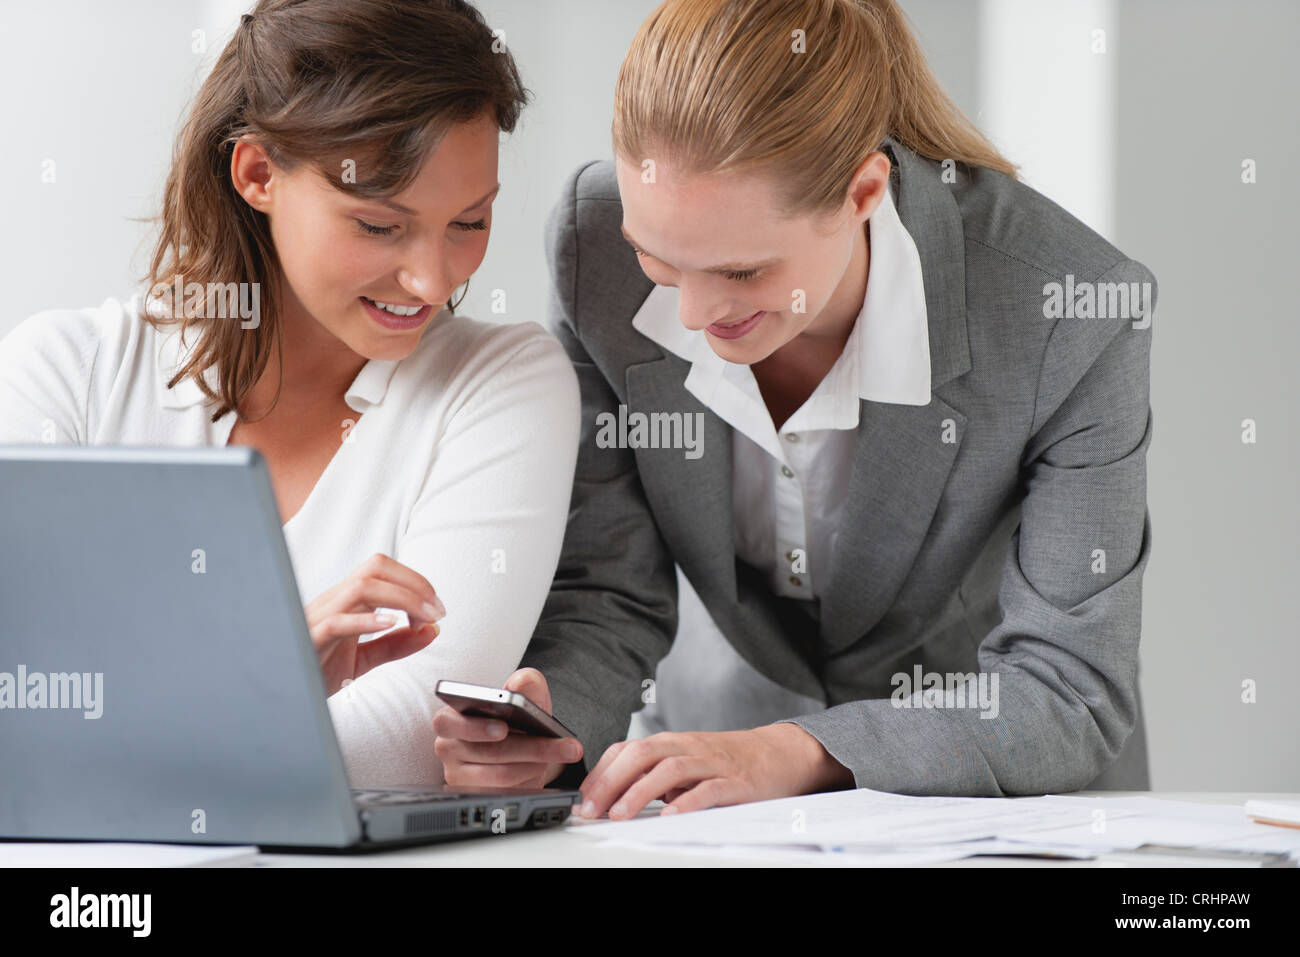 Business associates looking at cell phone Stock Photo